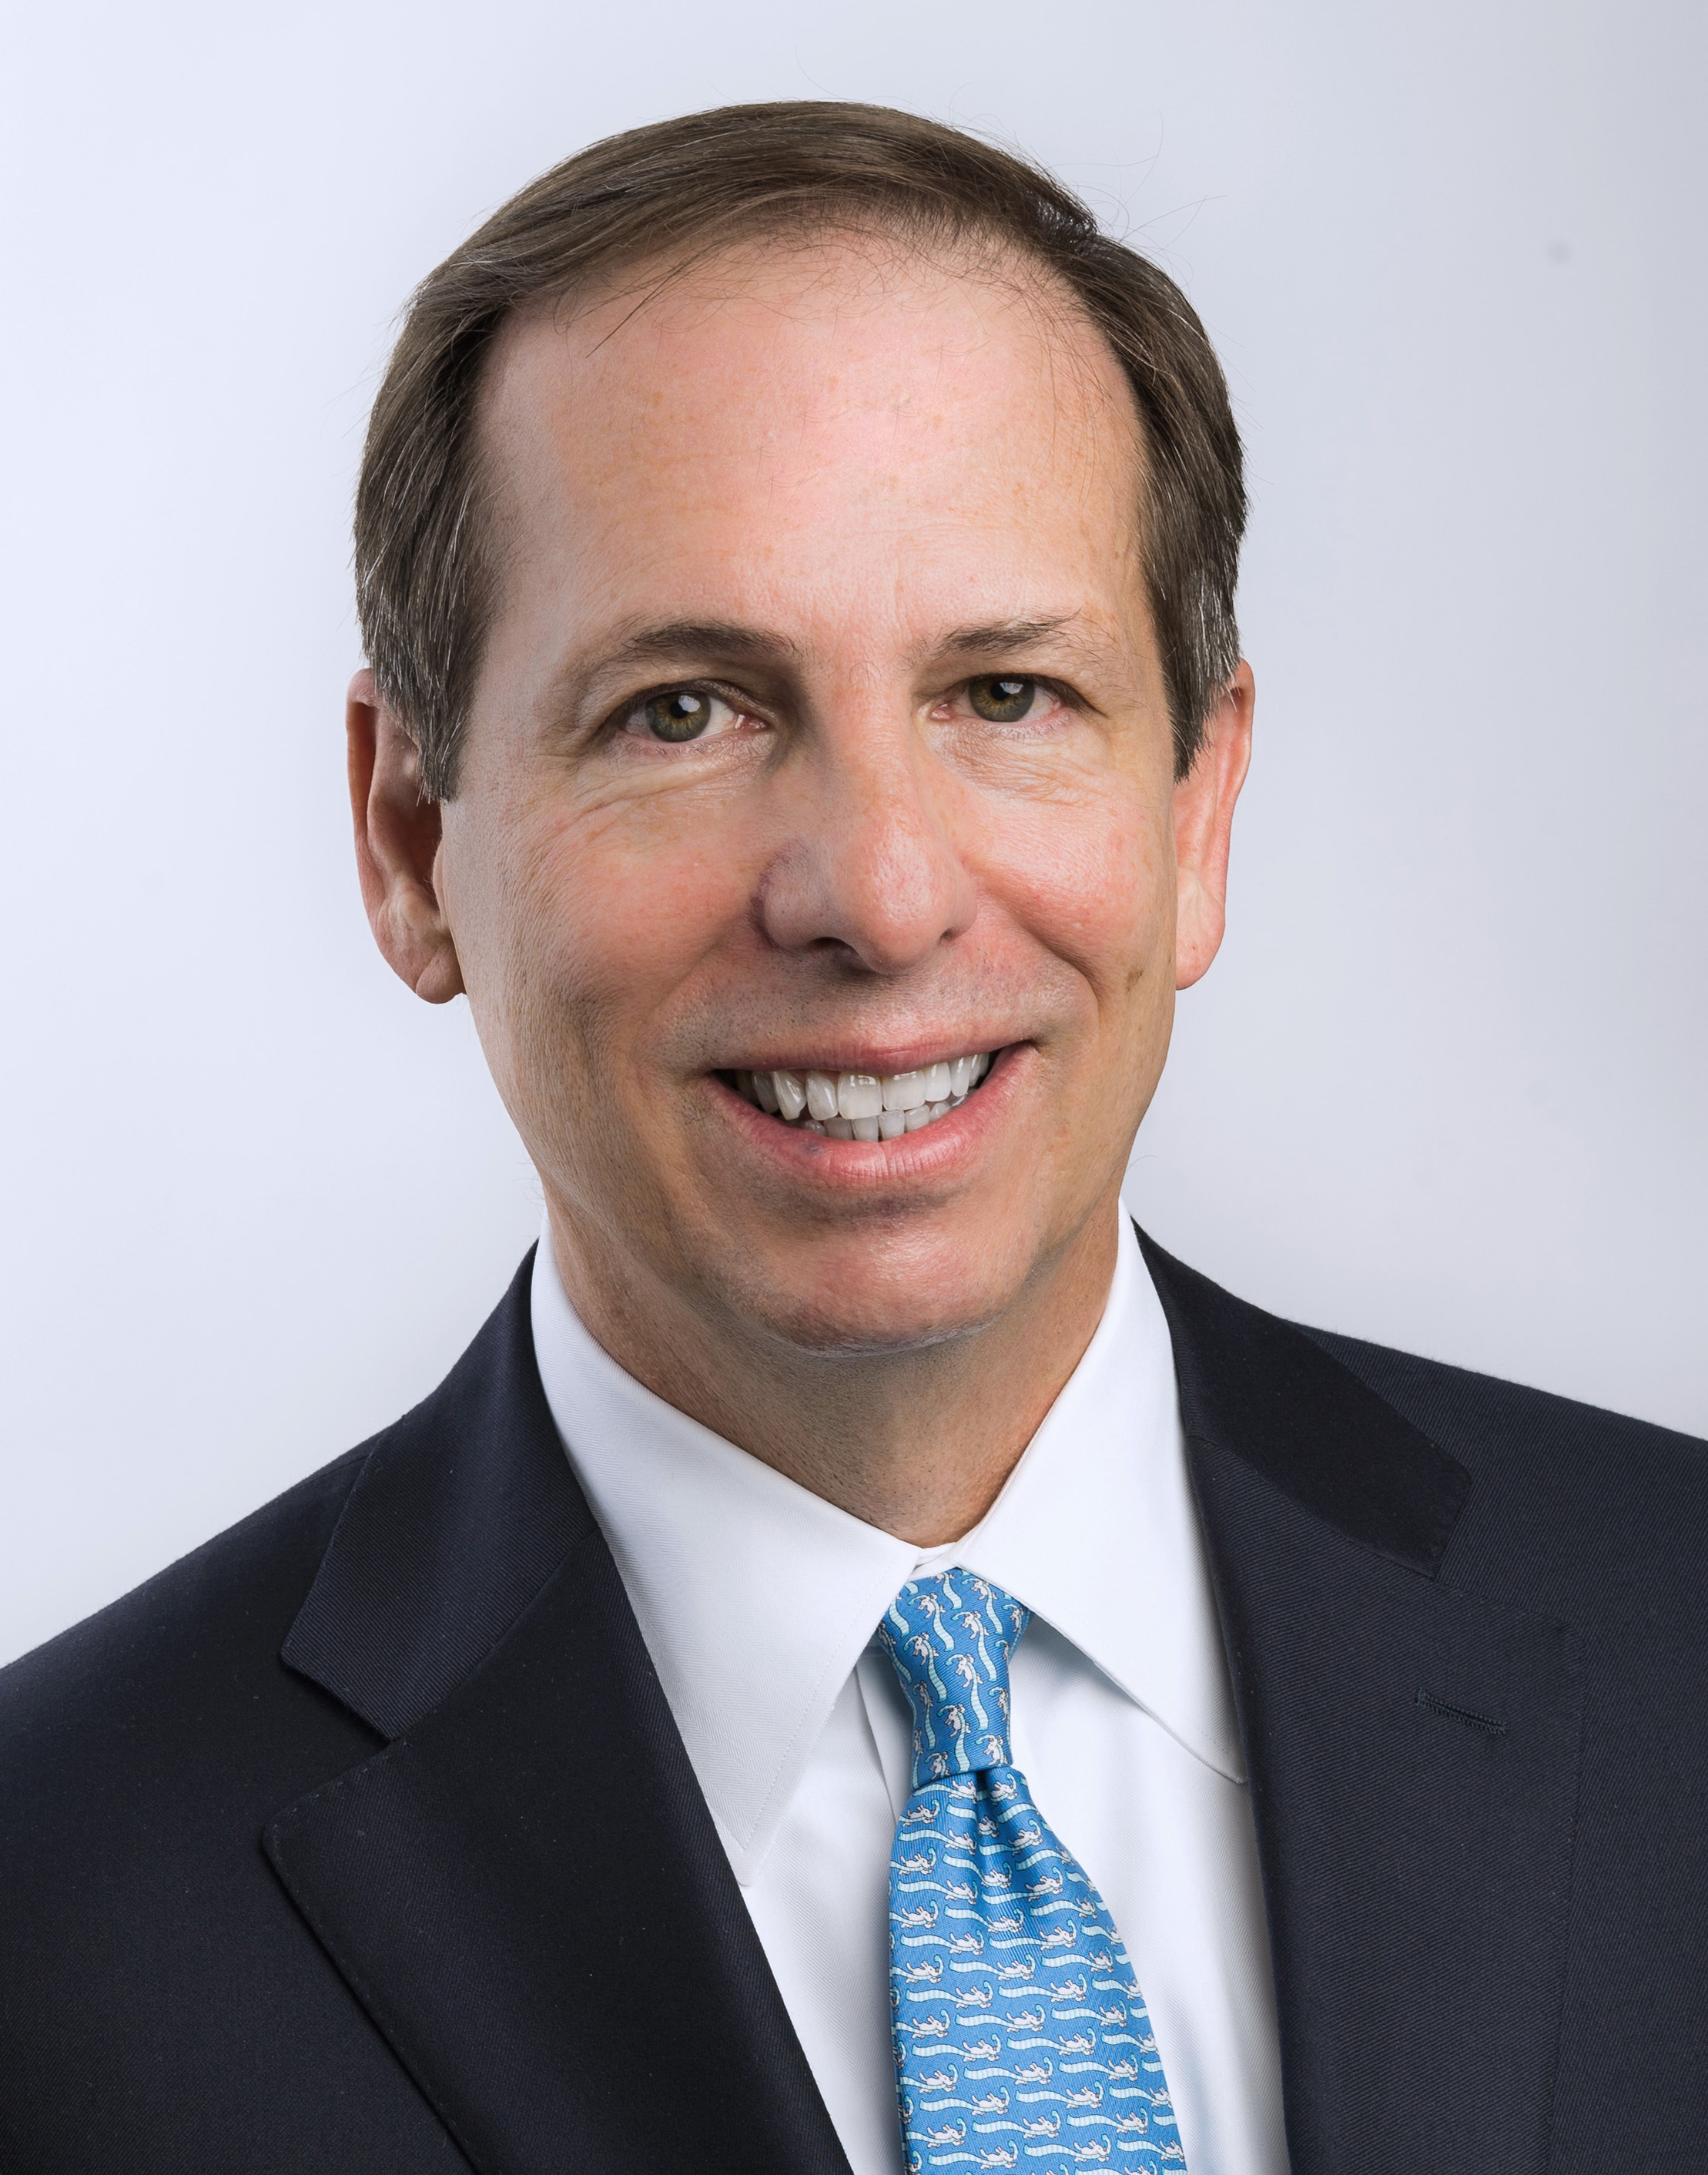 Portrait of Steven L. Cross, Managing Director & Head of Houston Office